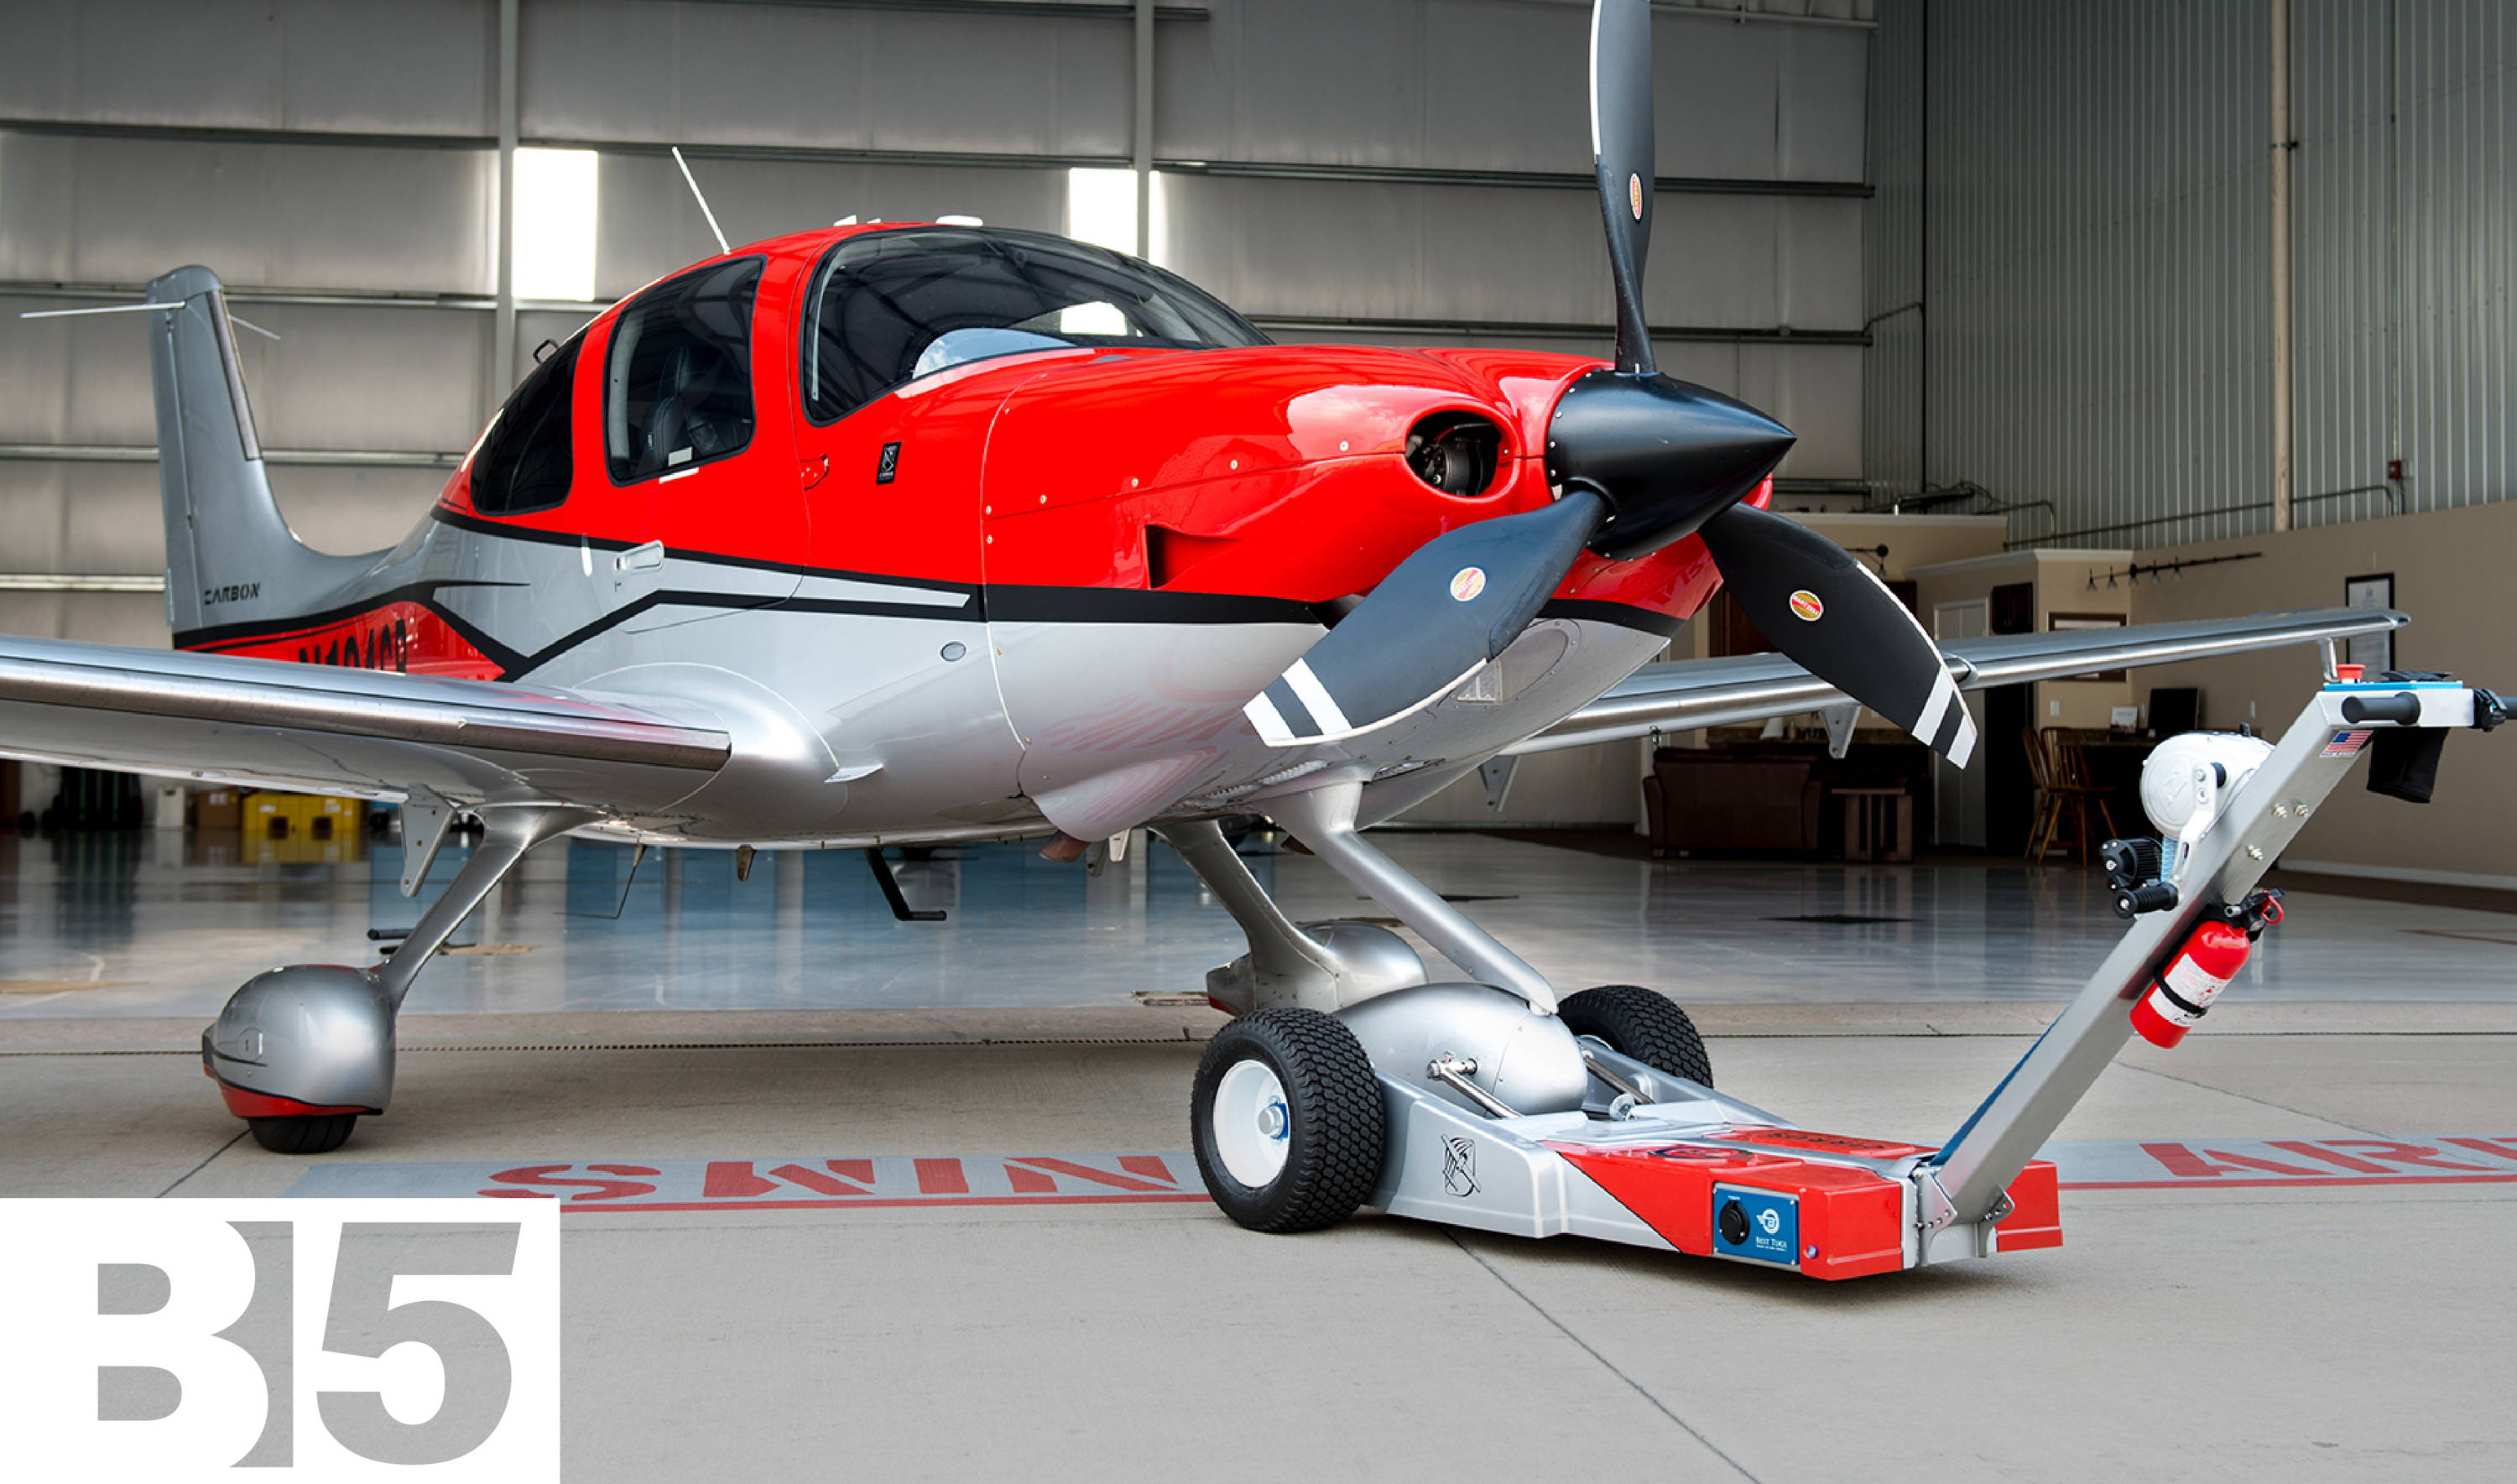 Best tug for light aircraft